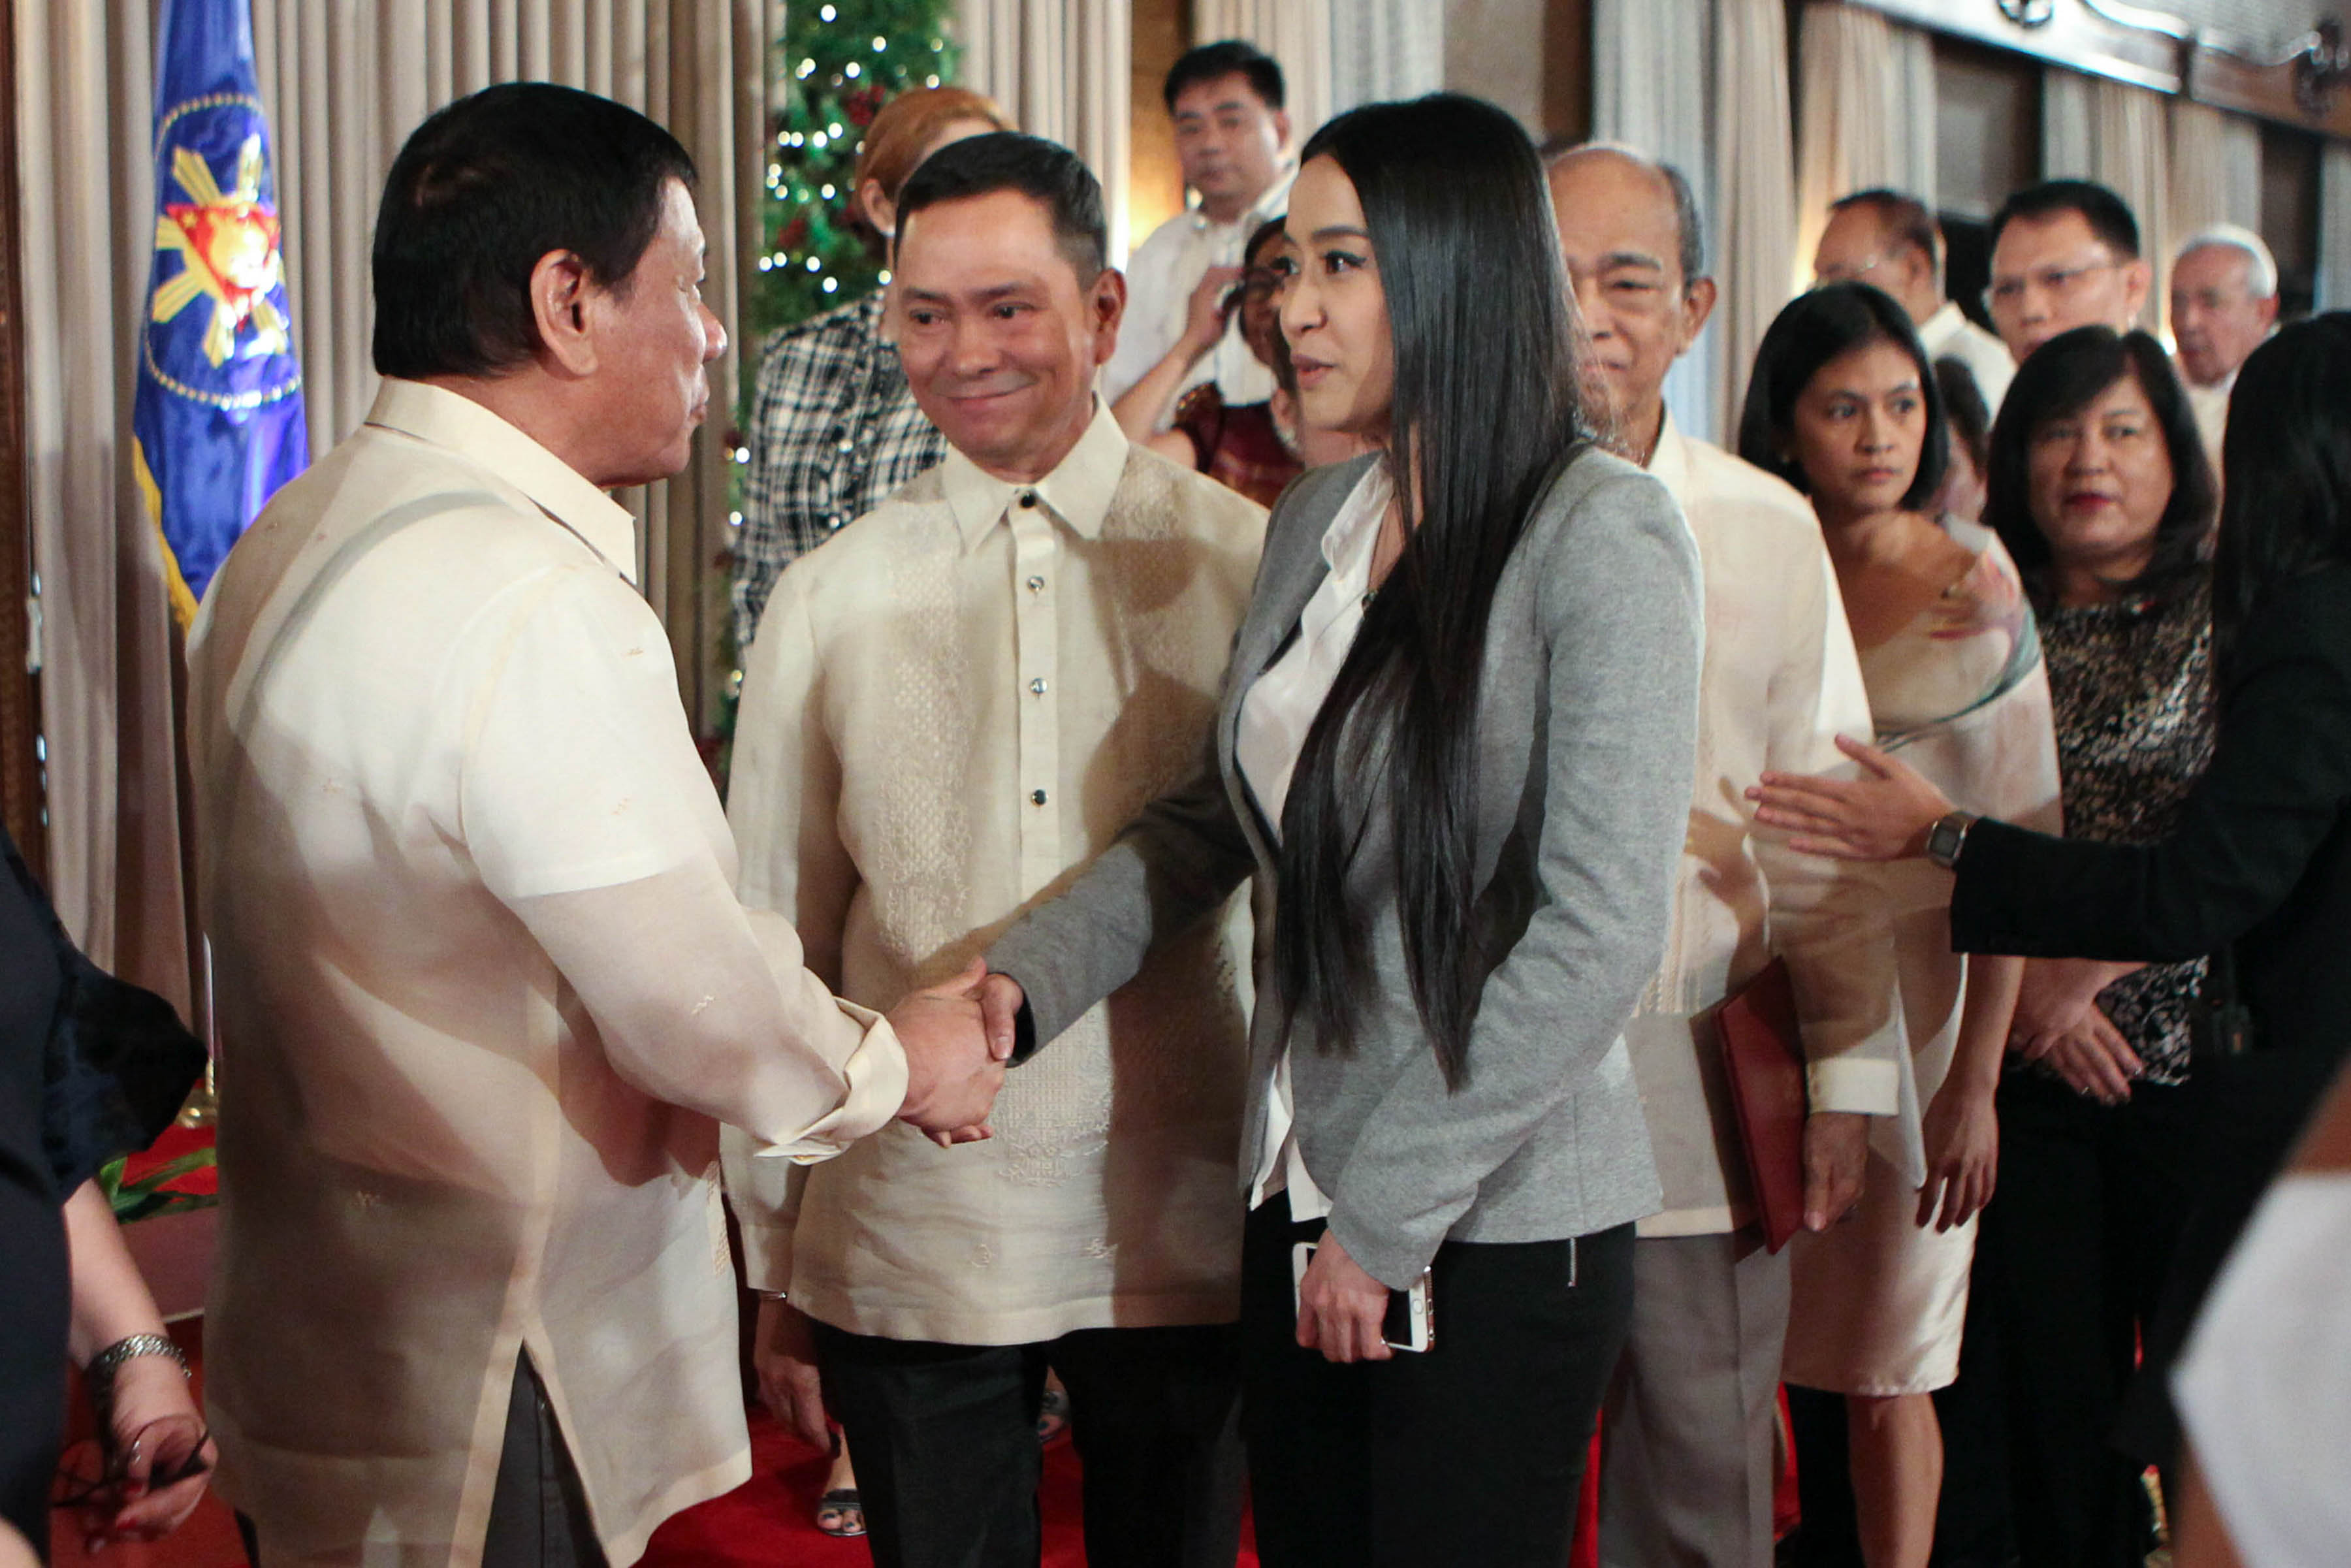 MTRCB BOARD MEMBER. President Rodrigo Duterte congratulates newly-appointed Movie and Television Review and Classification Board (MTRCB) member Mocha Uson during the oath-taking ceremony onu00a0January 9, 2017. Photo by Robinson Niu00f1al/Presidential Photo